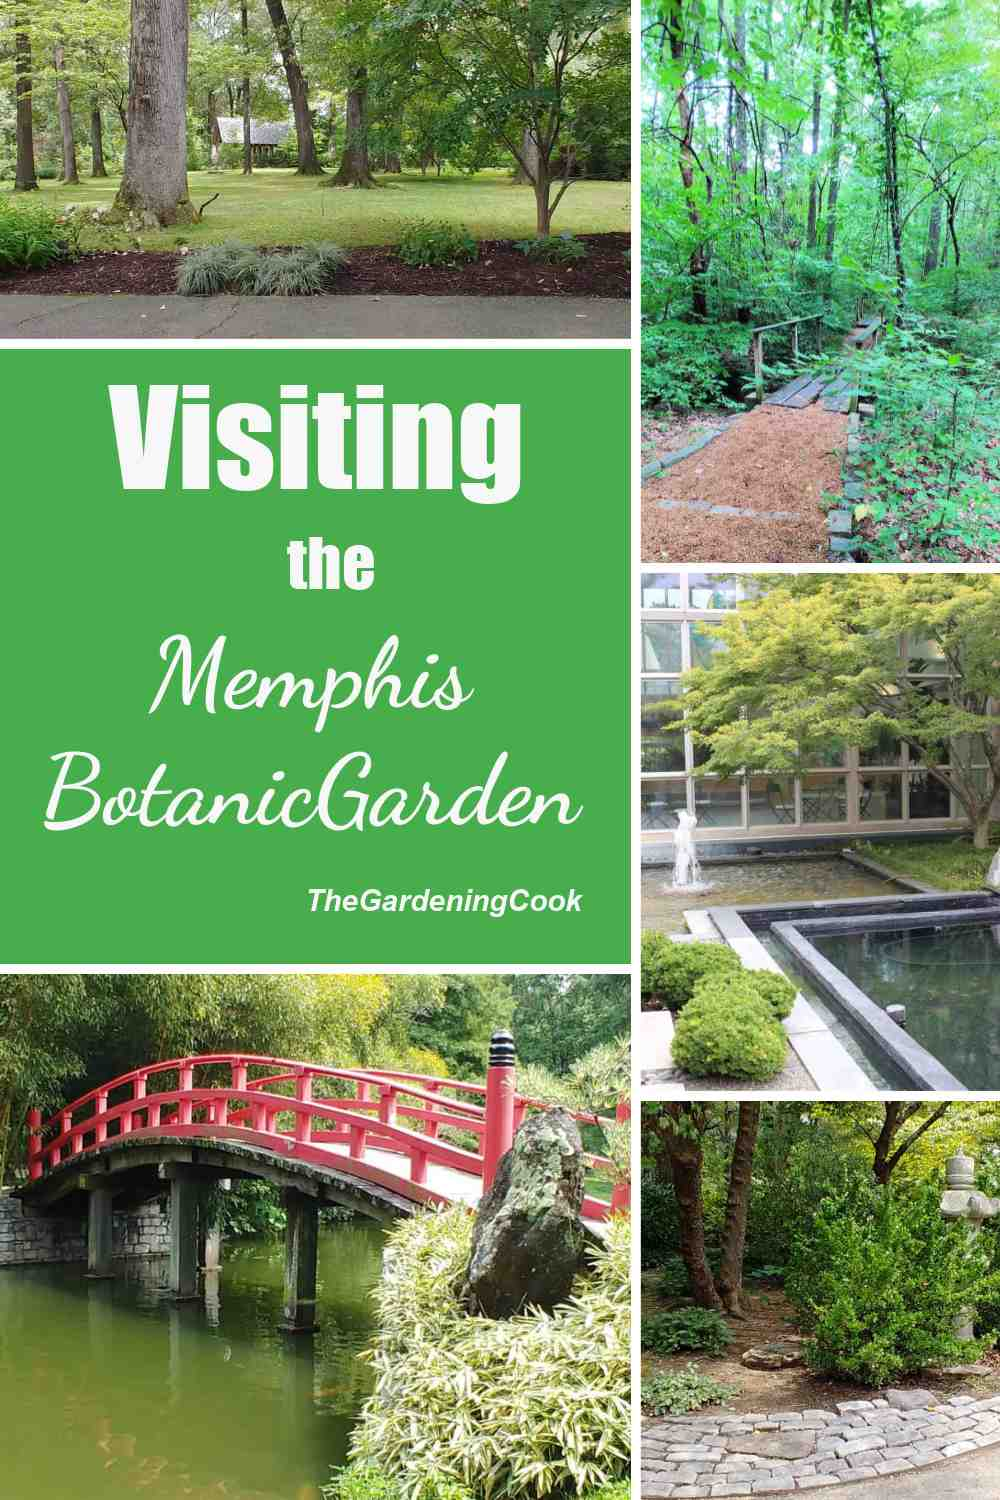 Pretty garden scenery in a post with words visiting the Memphis Botanic Garden.